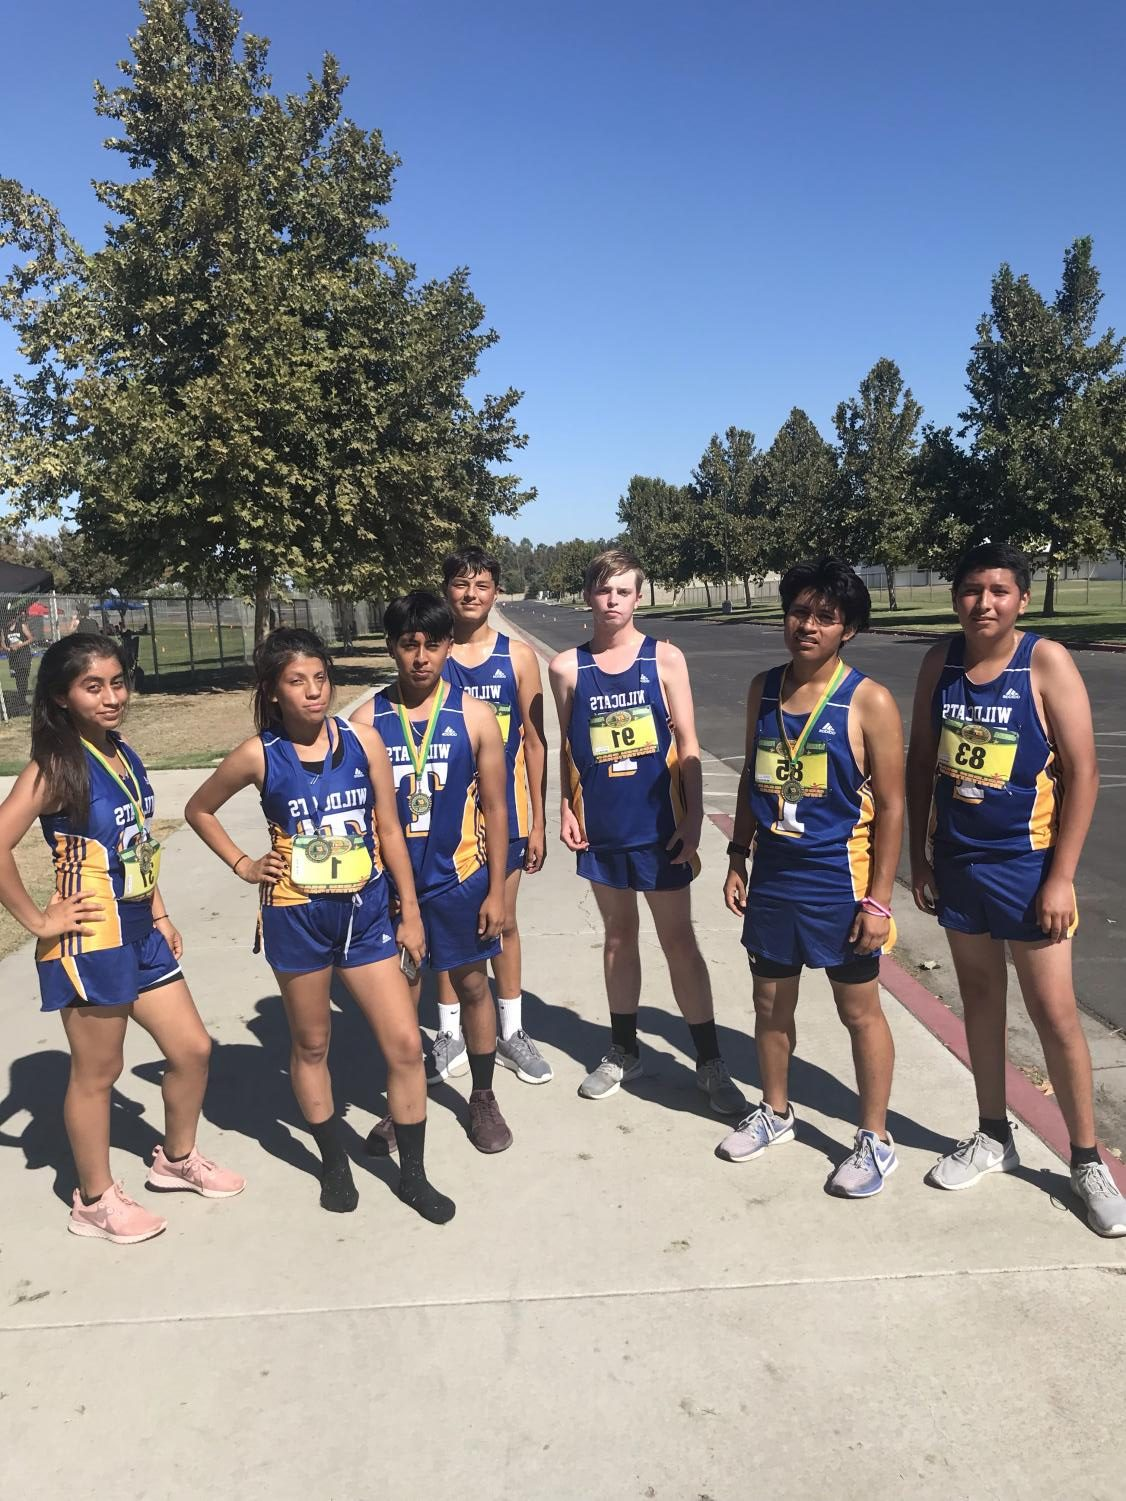 TUHS runners after they ran their race. The runner with the blue medal (Marimar Torres) got first place.